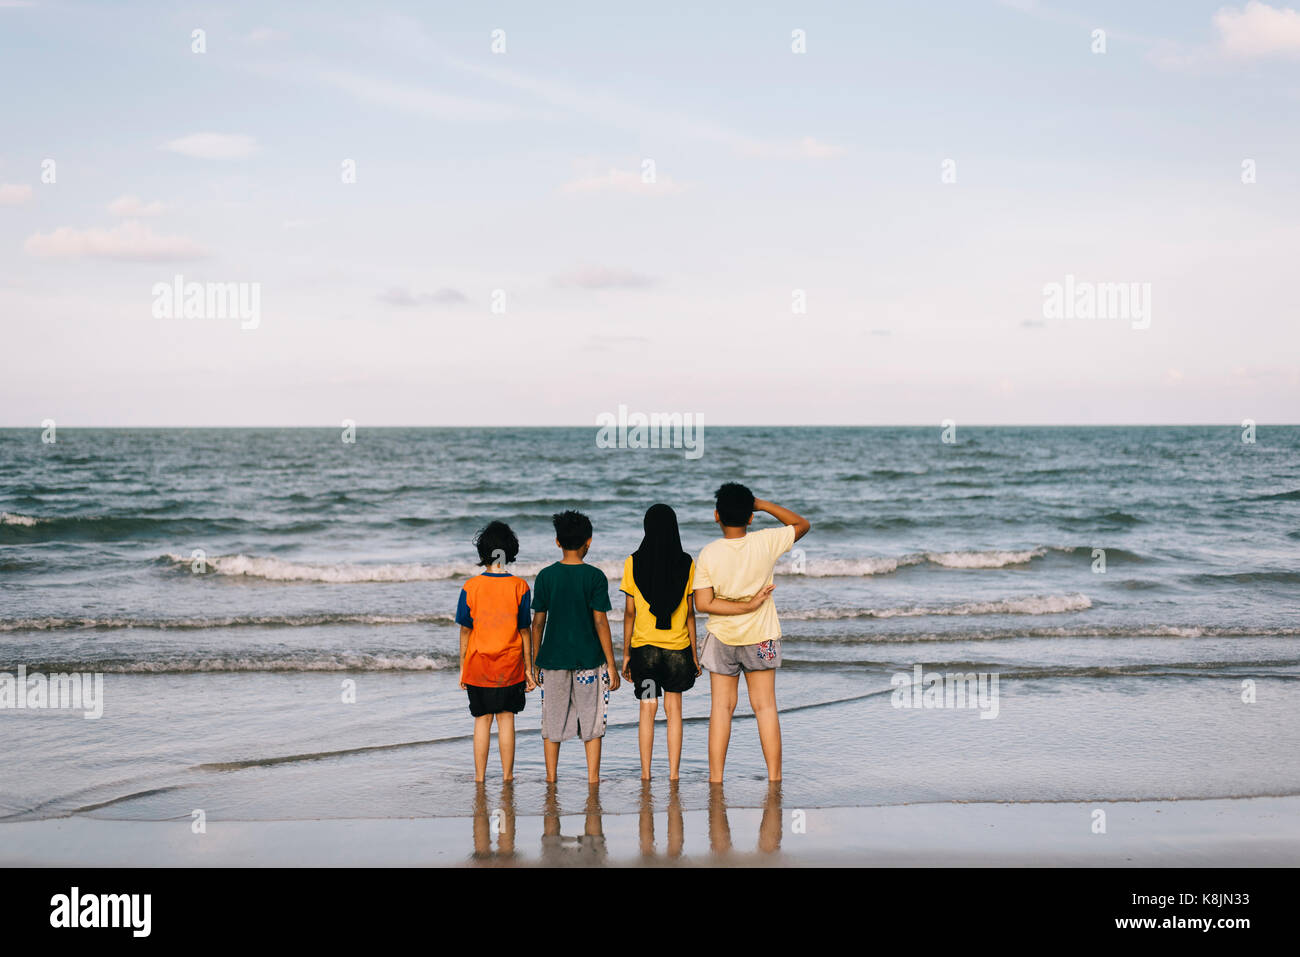 kids standing at the beach enjoying sea views.friendship concept.family concept.holiday concept - Stock Image